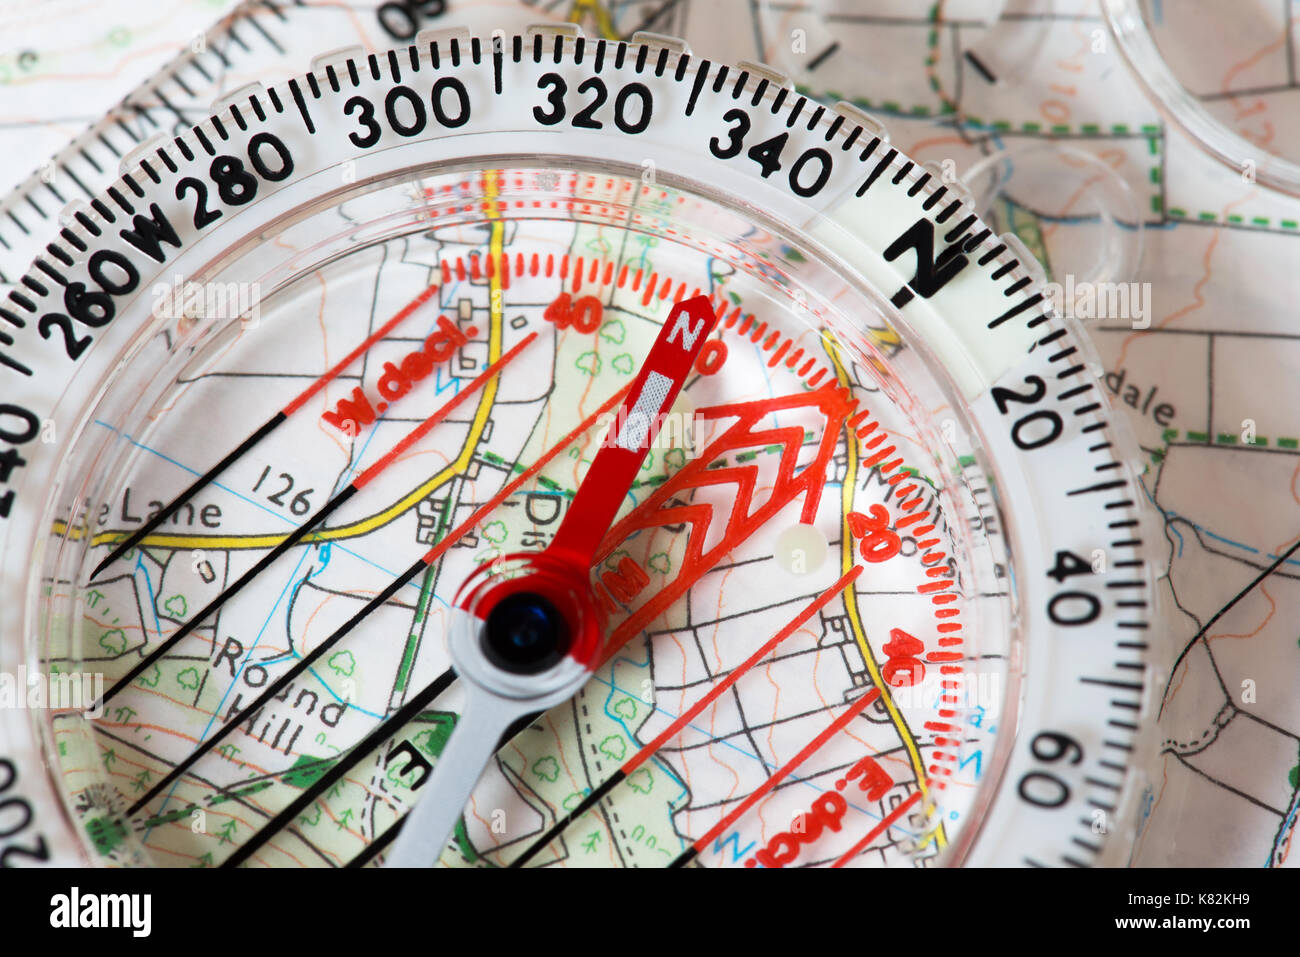 Close up of a map and compass - Stock Image